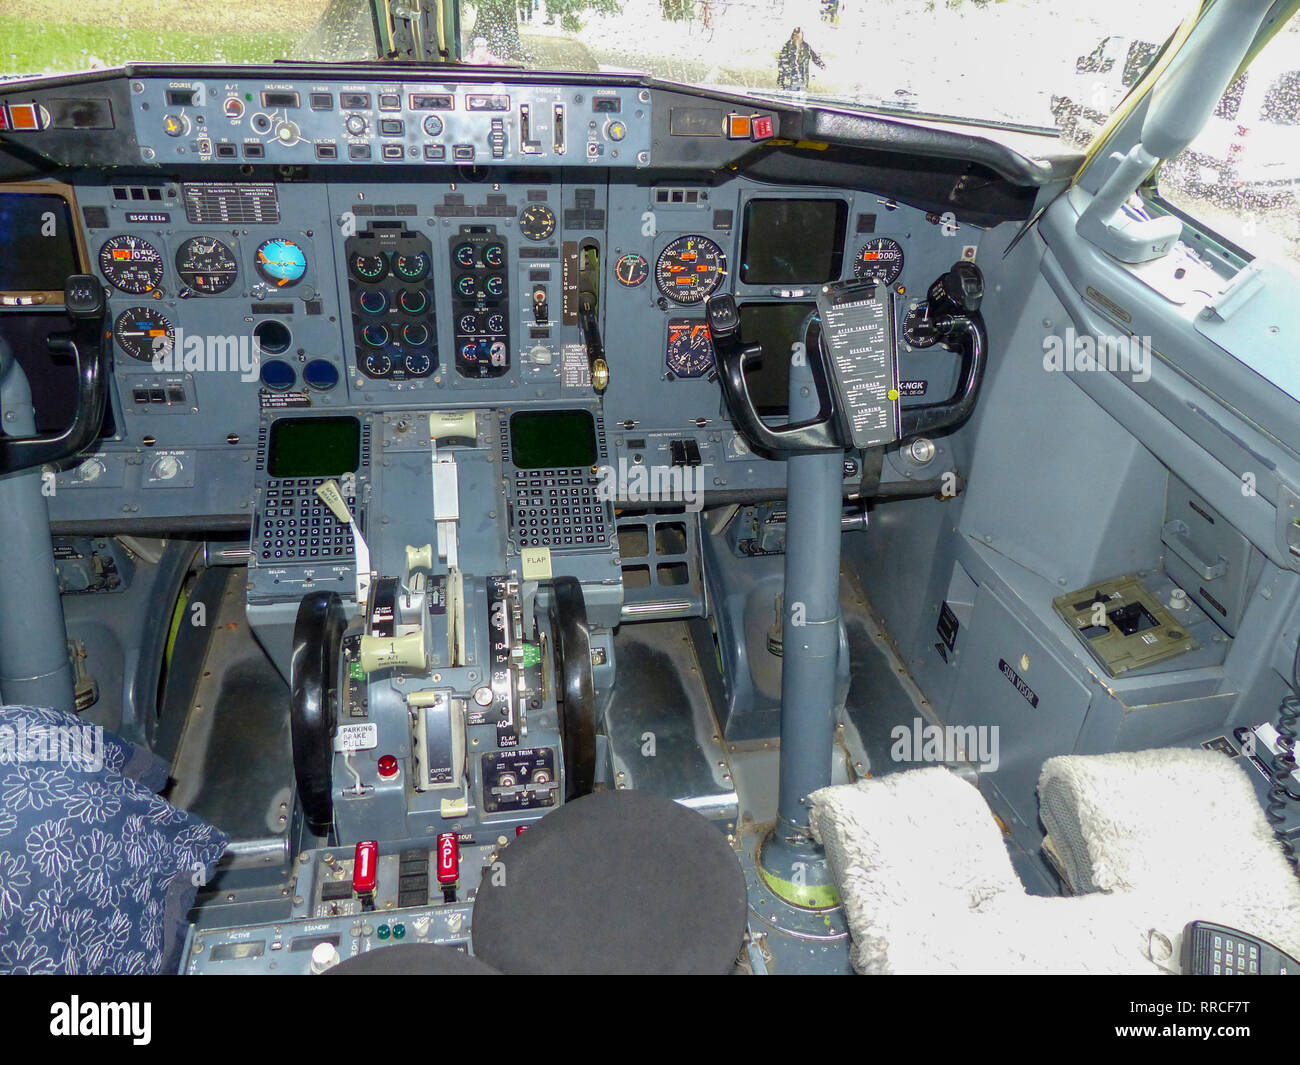 Interior of a cockpit with flight control gauges and controls - Stock Image